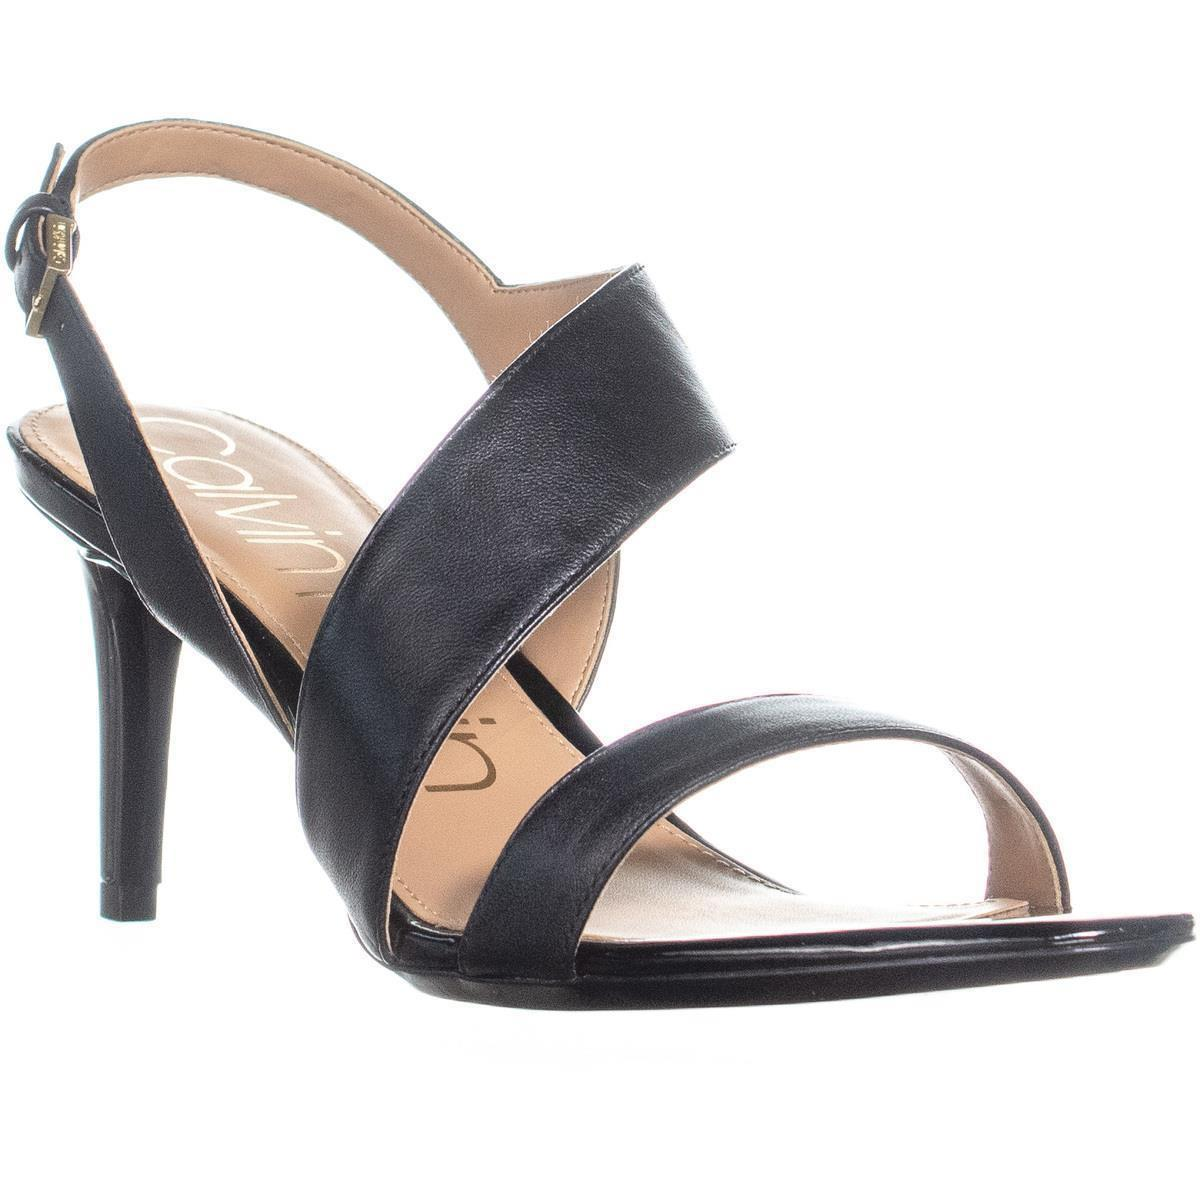 afaf70ccc670f0 https   www.lyst.com shoes calvin-klein-lancy-strap-slim-heel-sandals ...